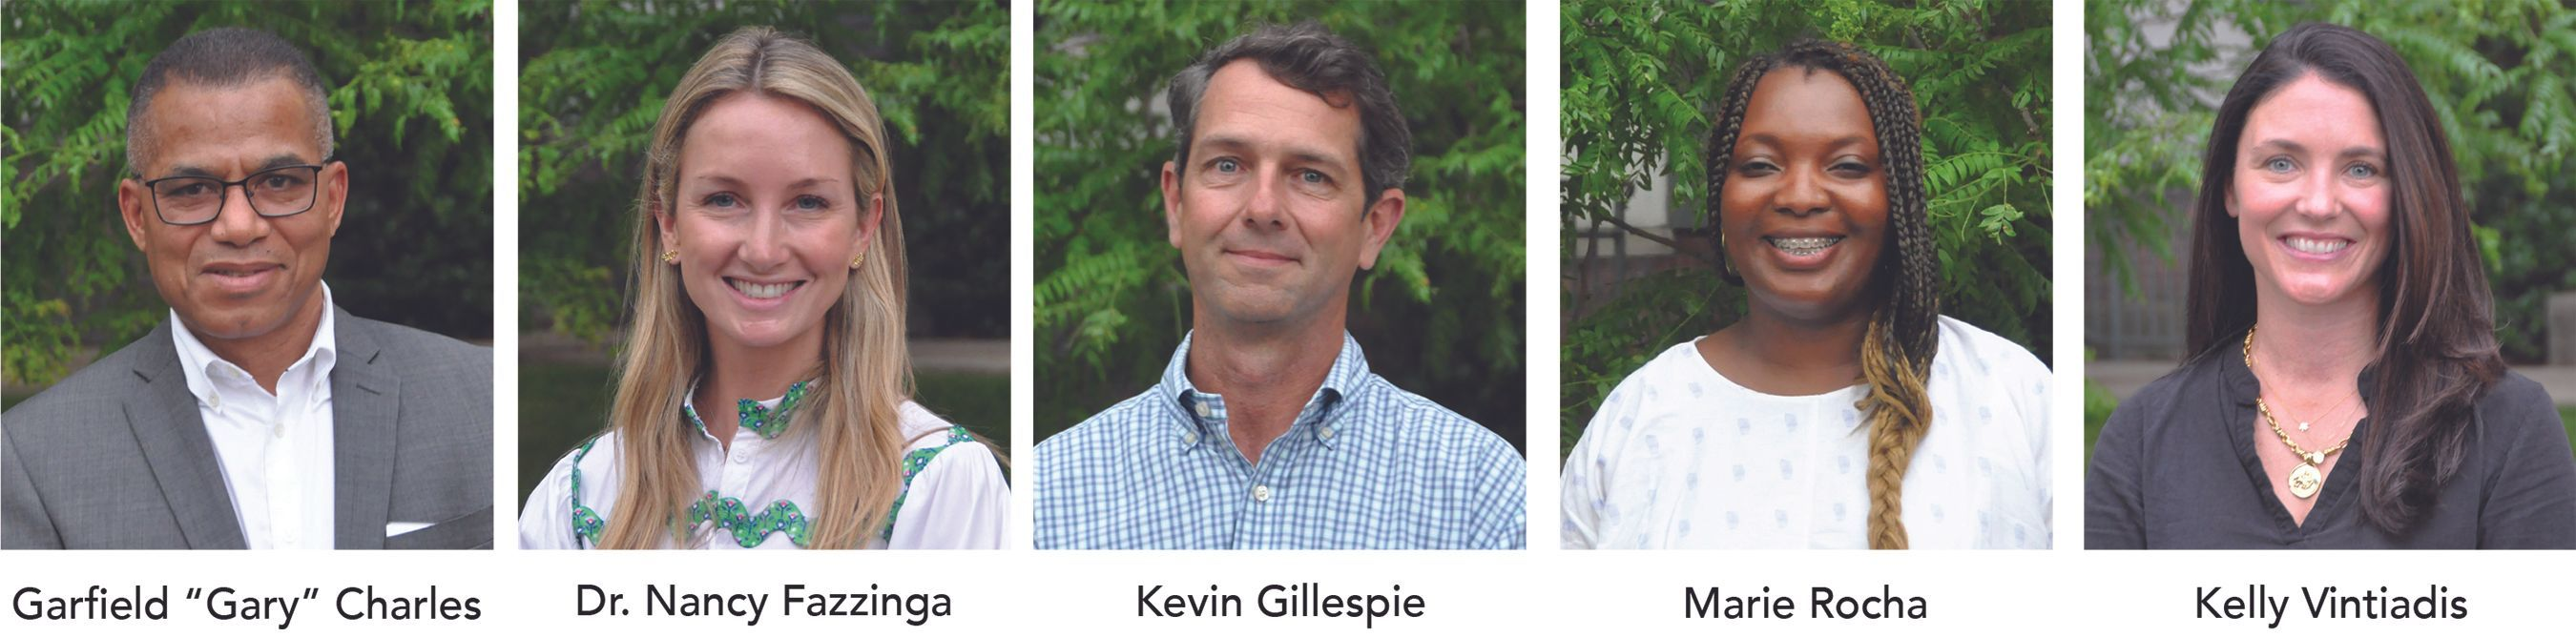 BGCG Welcomes New Members to Board of Directors